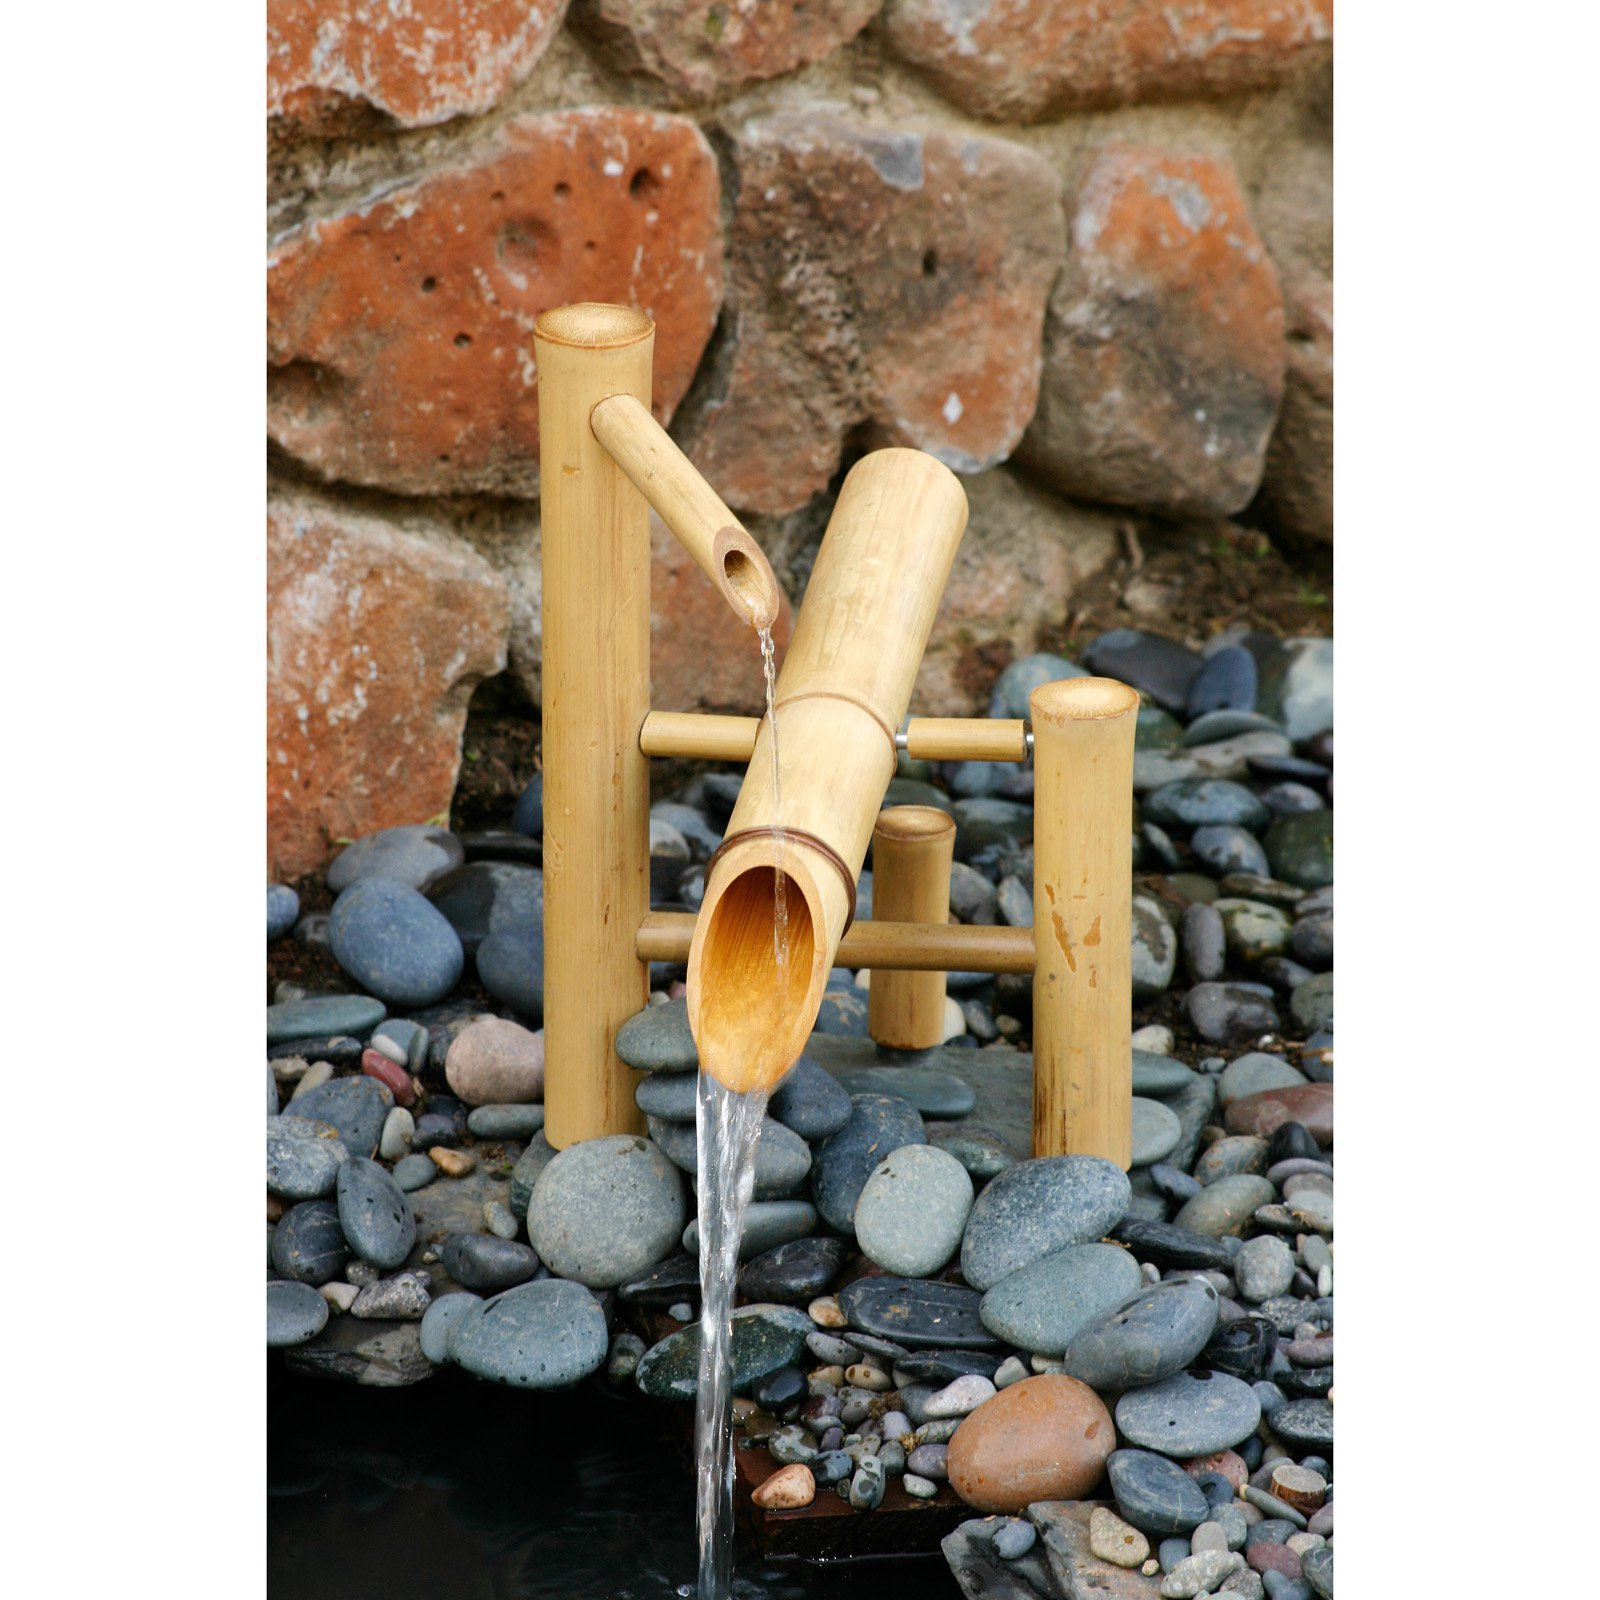 Bamboo Accents 12-in. Rocking Fountain Spout and Pump Kit